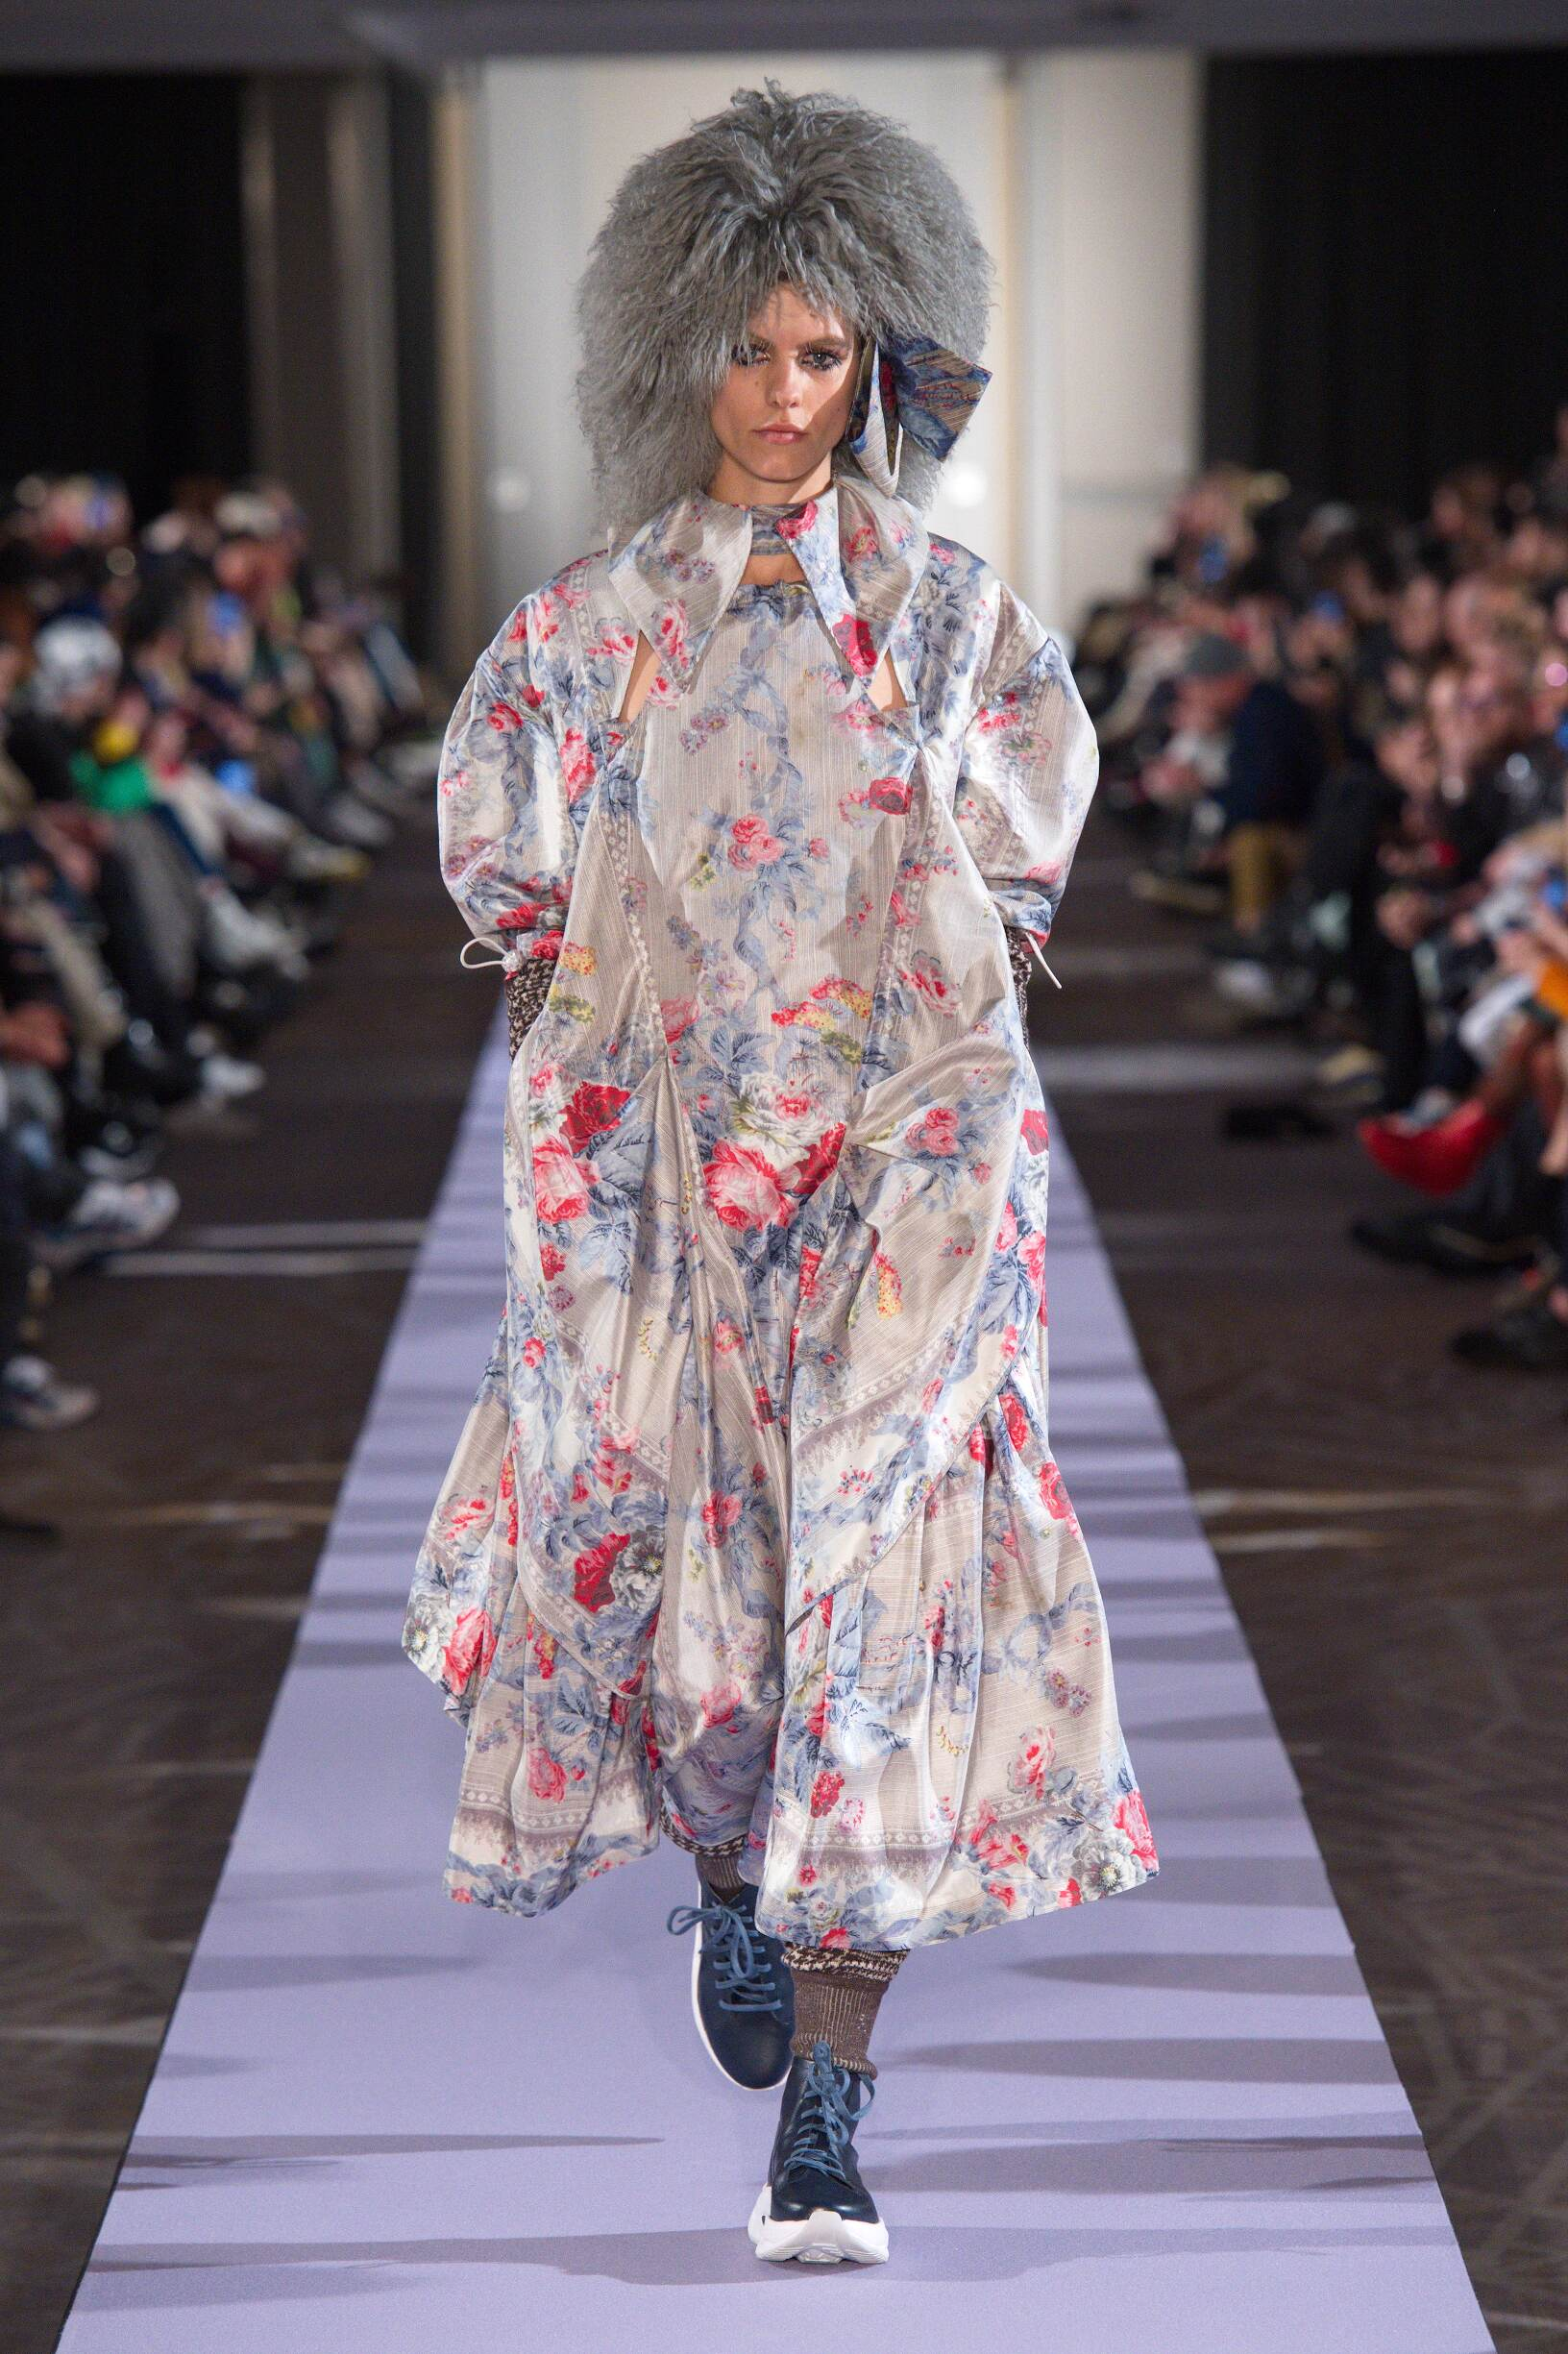 2019 Andreas Kronthaler for Vivienne Westwood Fall Winter Woman